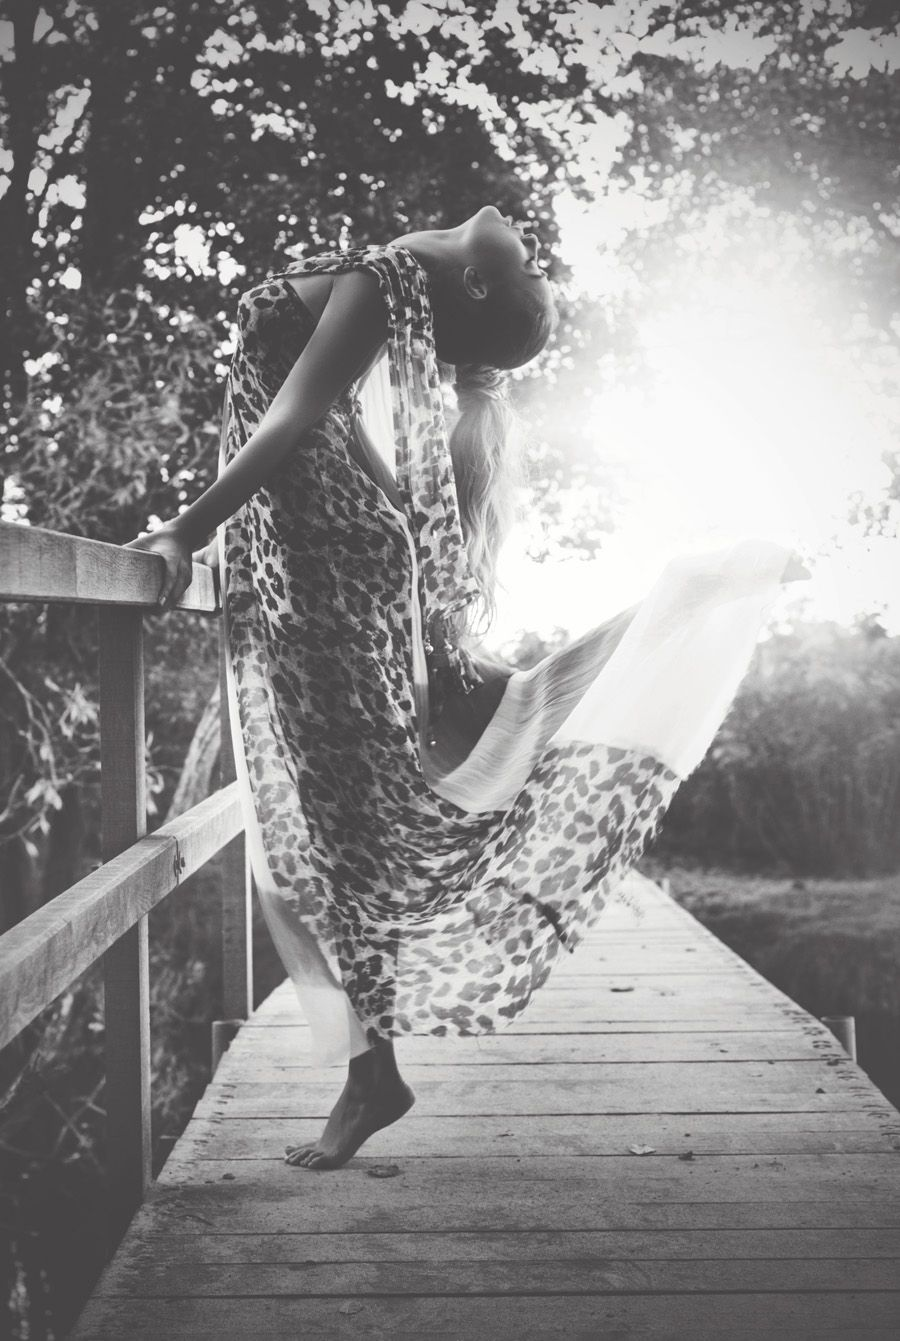 Airy maxi dress done right. And a gorgeous picture to boot!